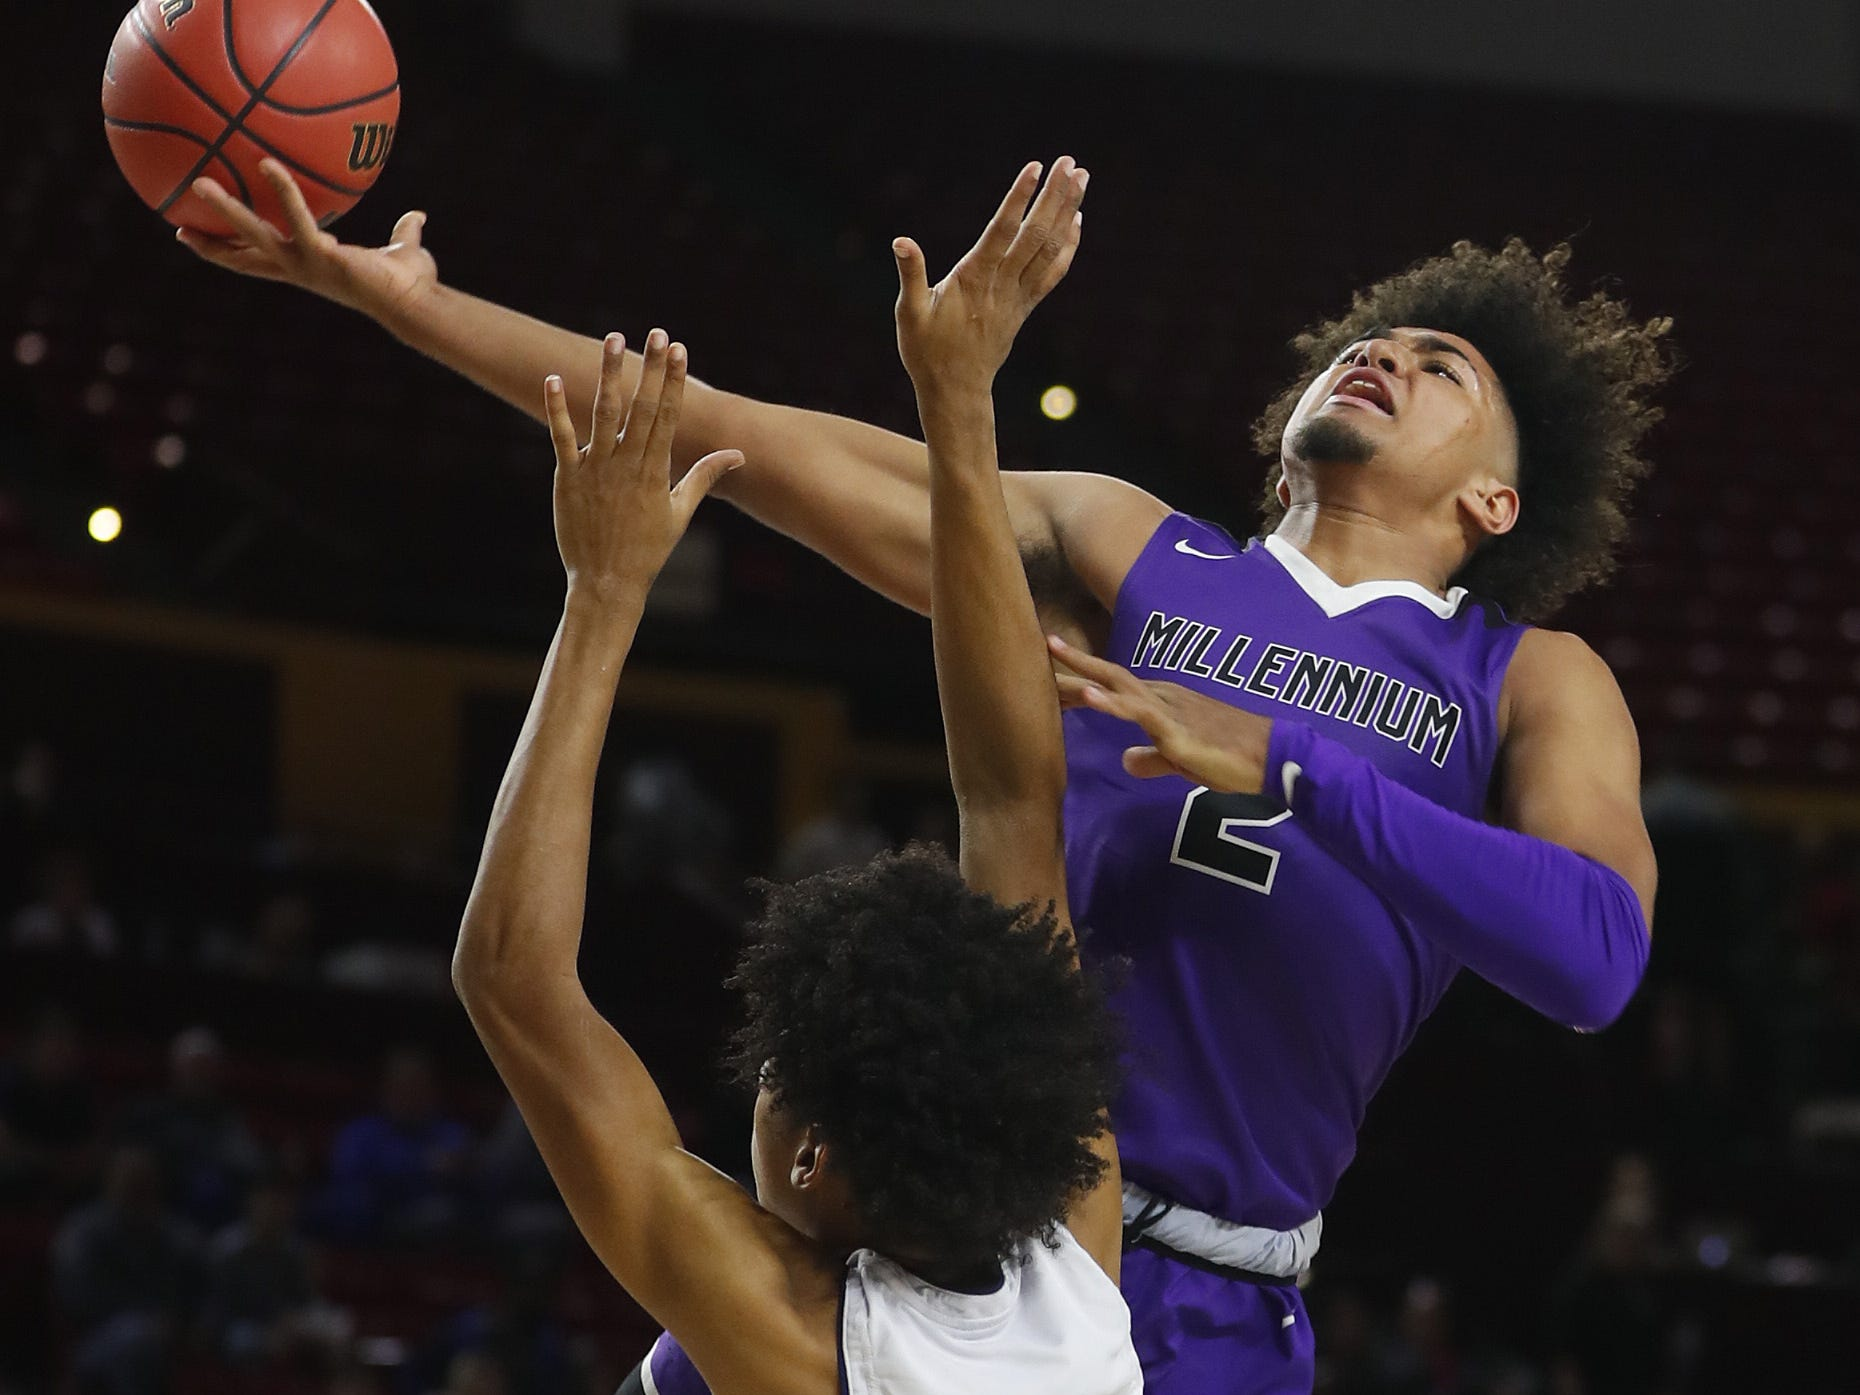 Millennium's Jalan Early (2) goes up for a layup against Apollo's Tramane Lee (11) during the 5A boys basketball state semifinal game at Wells Fargo Arena in Tempe, Ariz. on February 18, 2019.